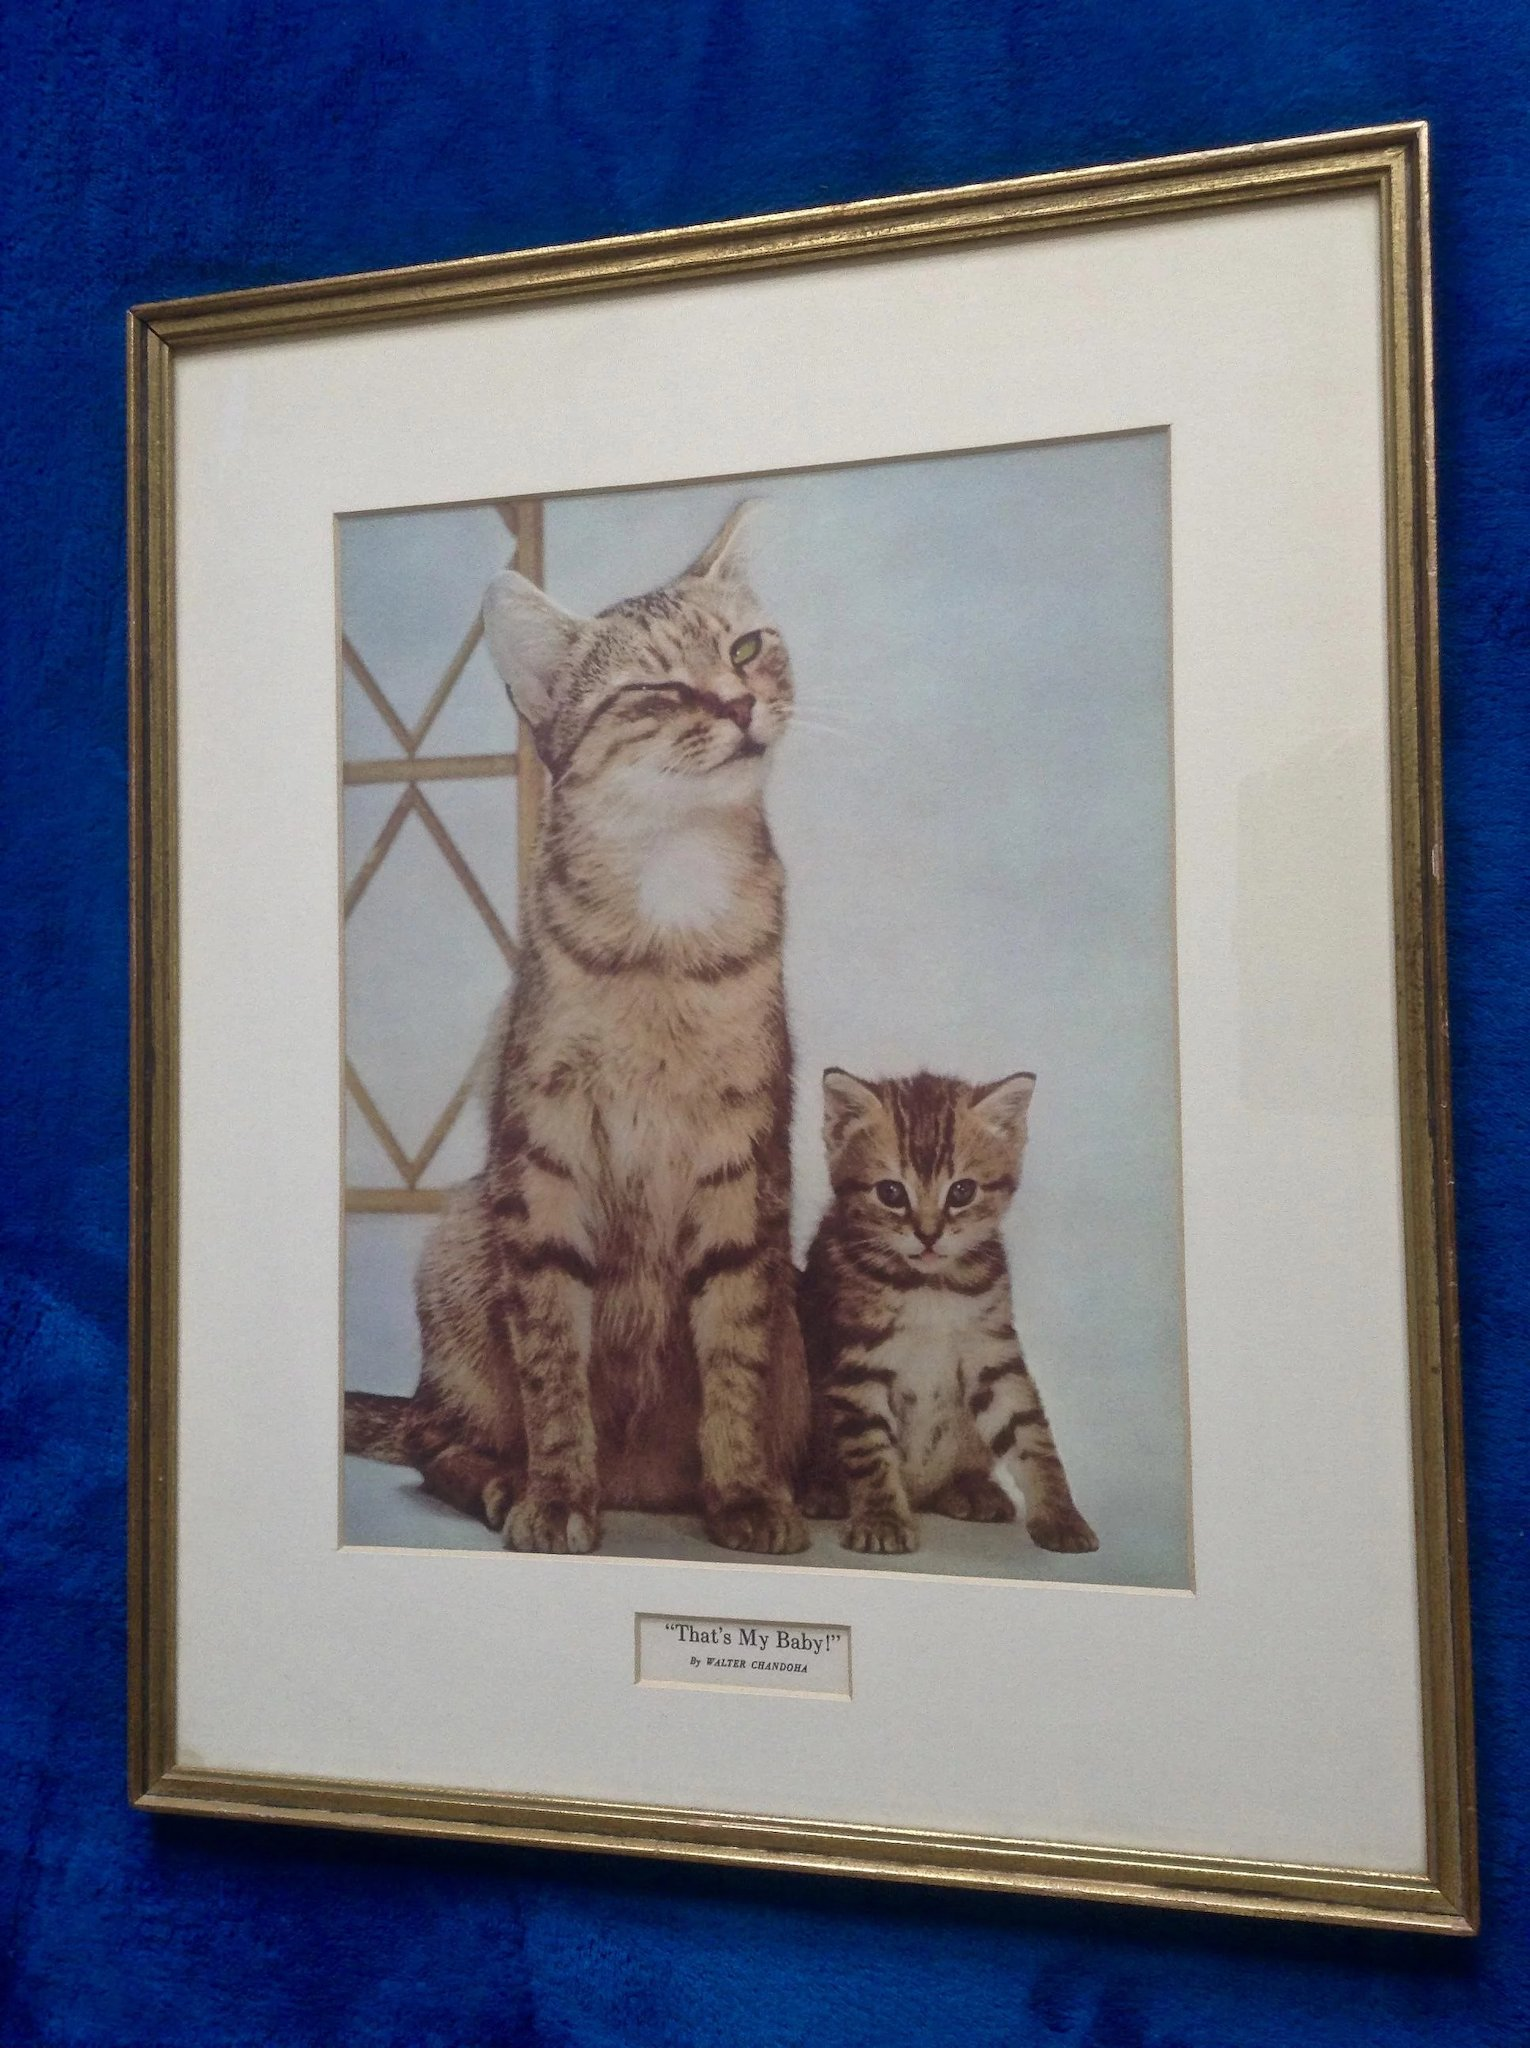 1960 S Walter Chandoha That S My Baby Cat Poster Framed